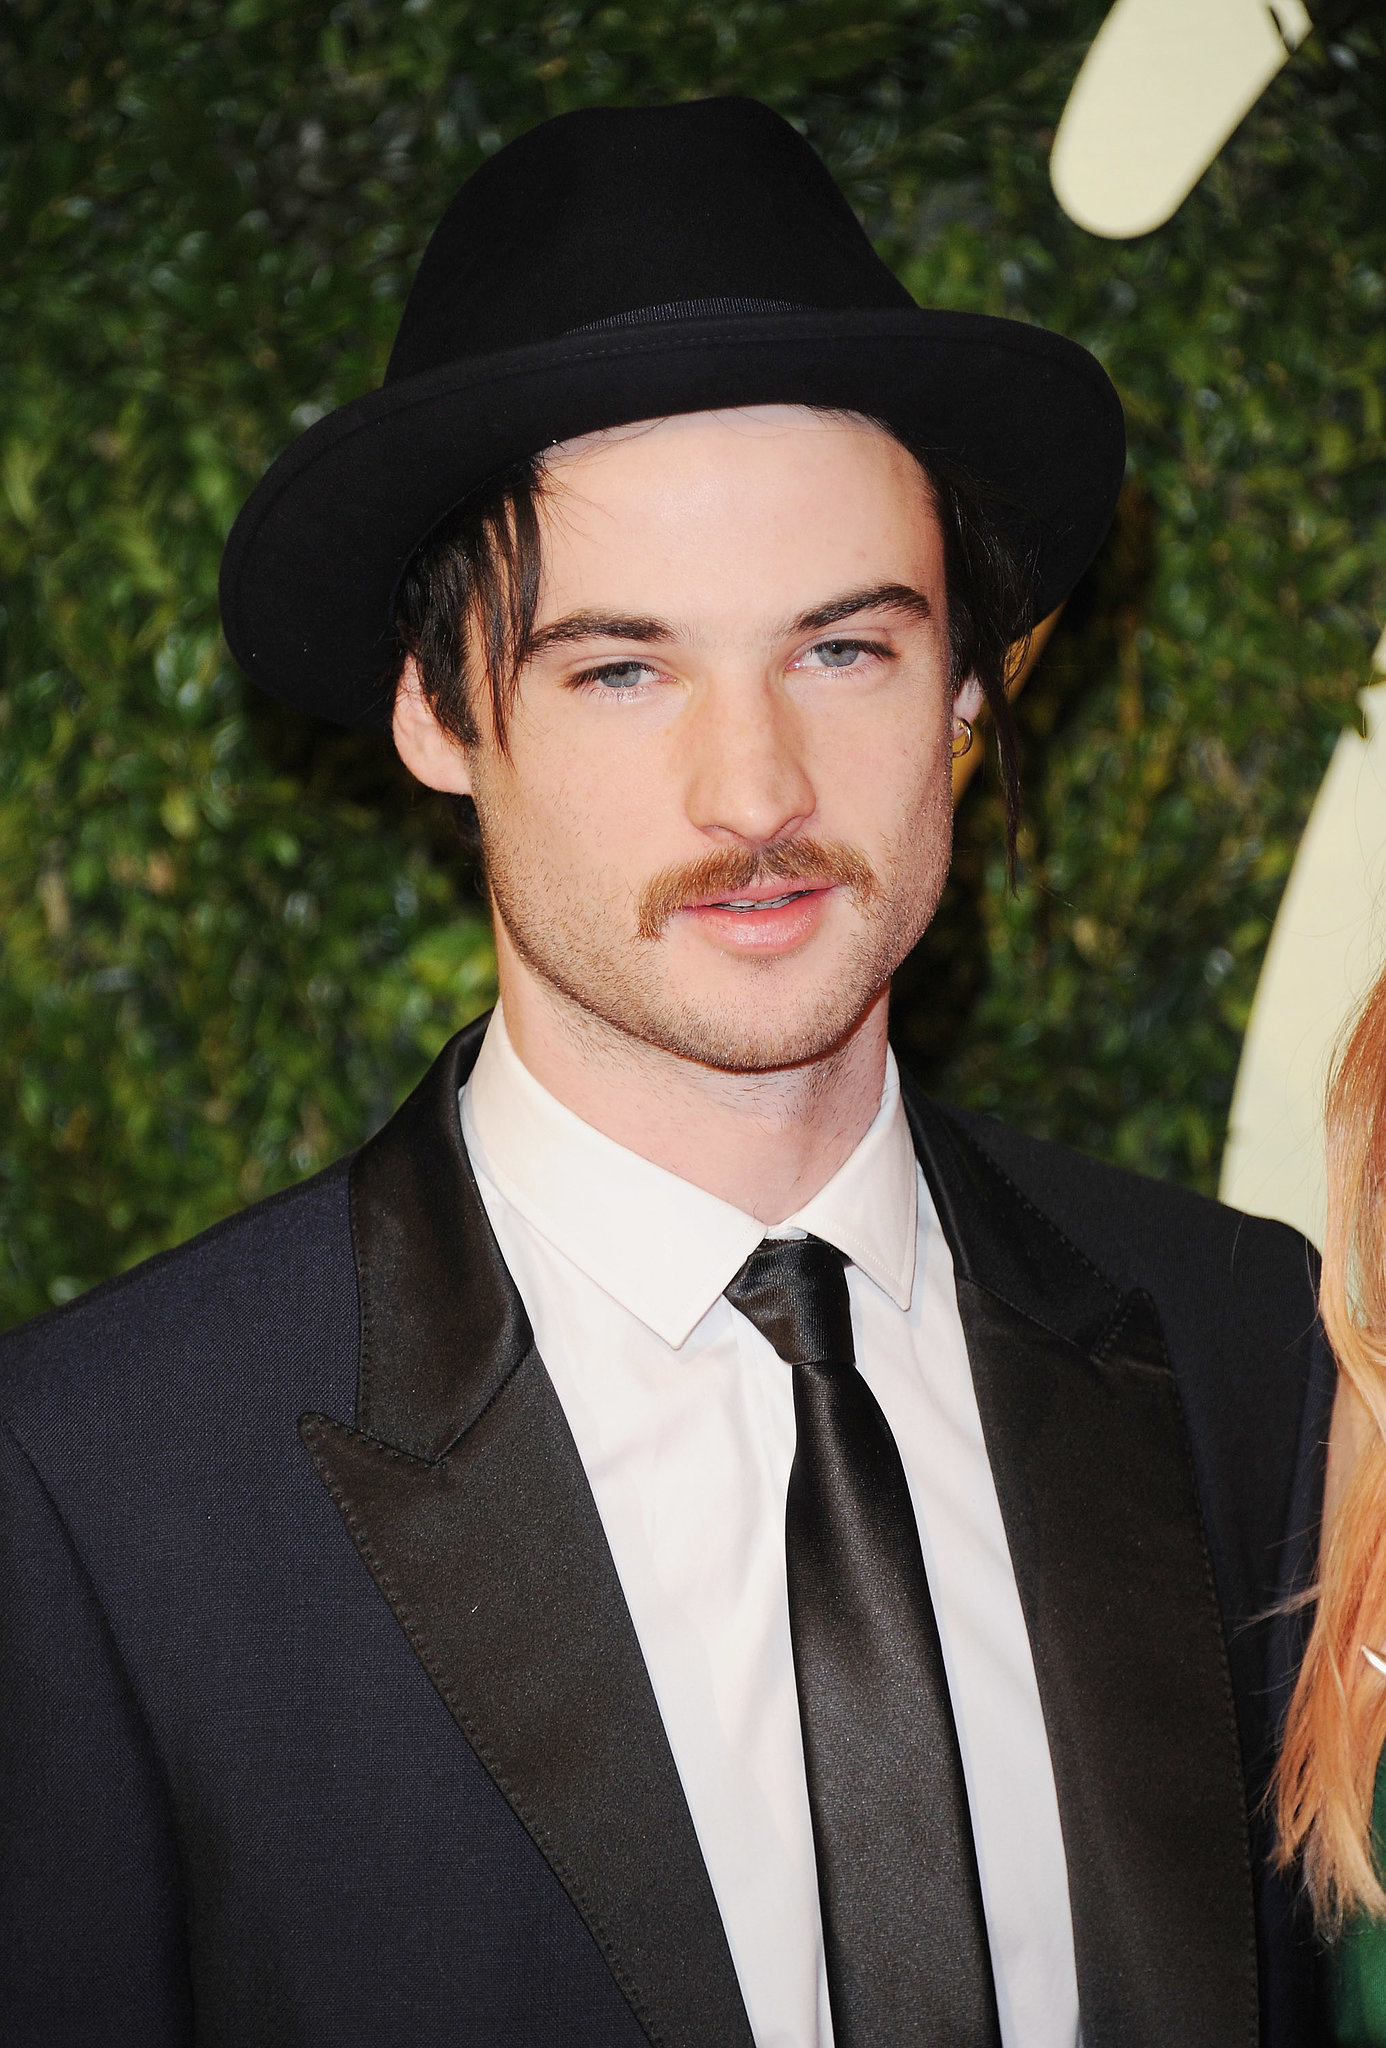 tom sturridge interviewtom sturridge instagram, tom sturridge tumblr, tom sturridge like minds, tom sturridge 2014, tom sturridge gif hunt, tom sturridge movies, tom sturridge interview, tom sturridge far from the madding crowd, tom sturridge robert pattinson, tom sturridge on the road, tom sturridge henry vi, tom sturridge sienna miller, tom sturridge gif, tom sturridge vk, tom sturridge daughter, tom sturridge twitter